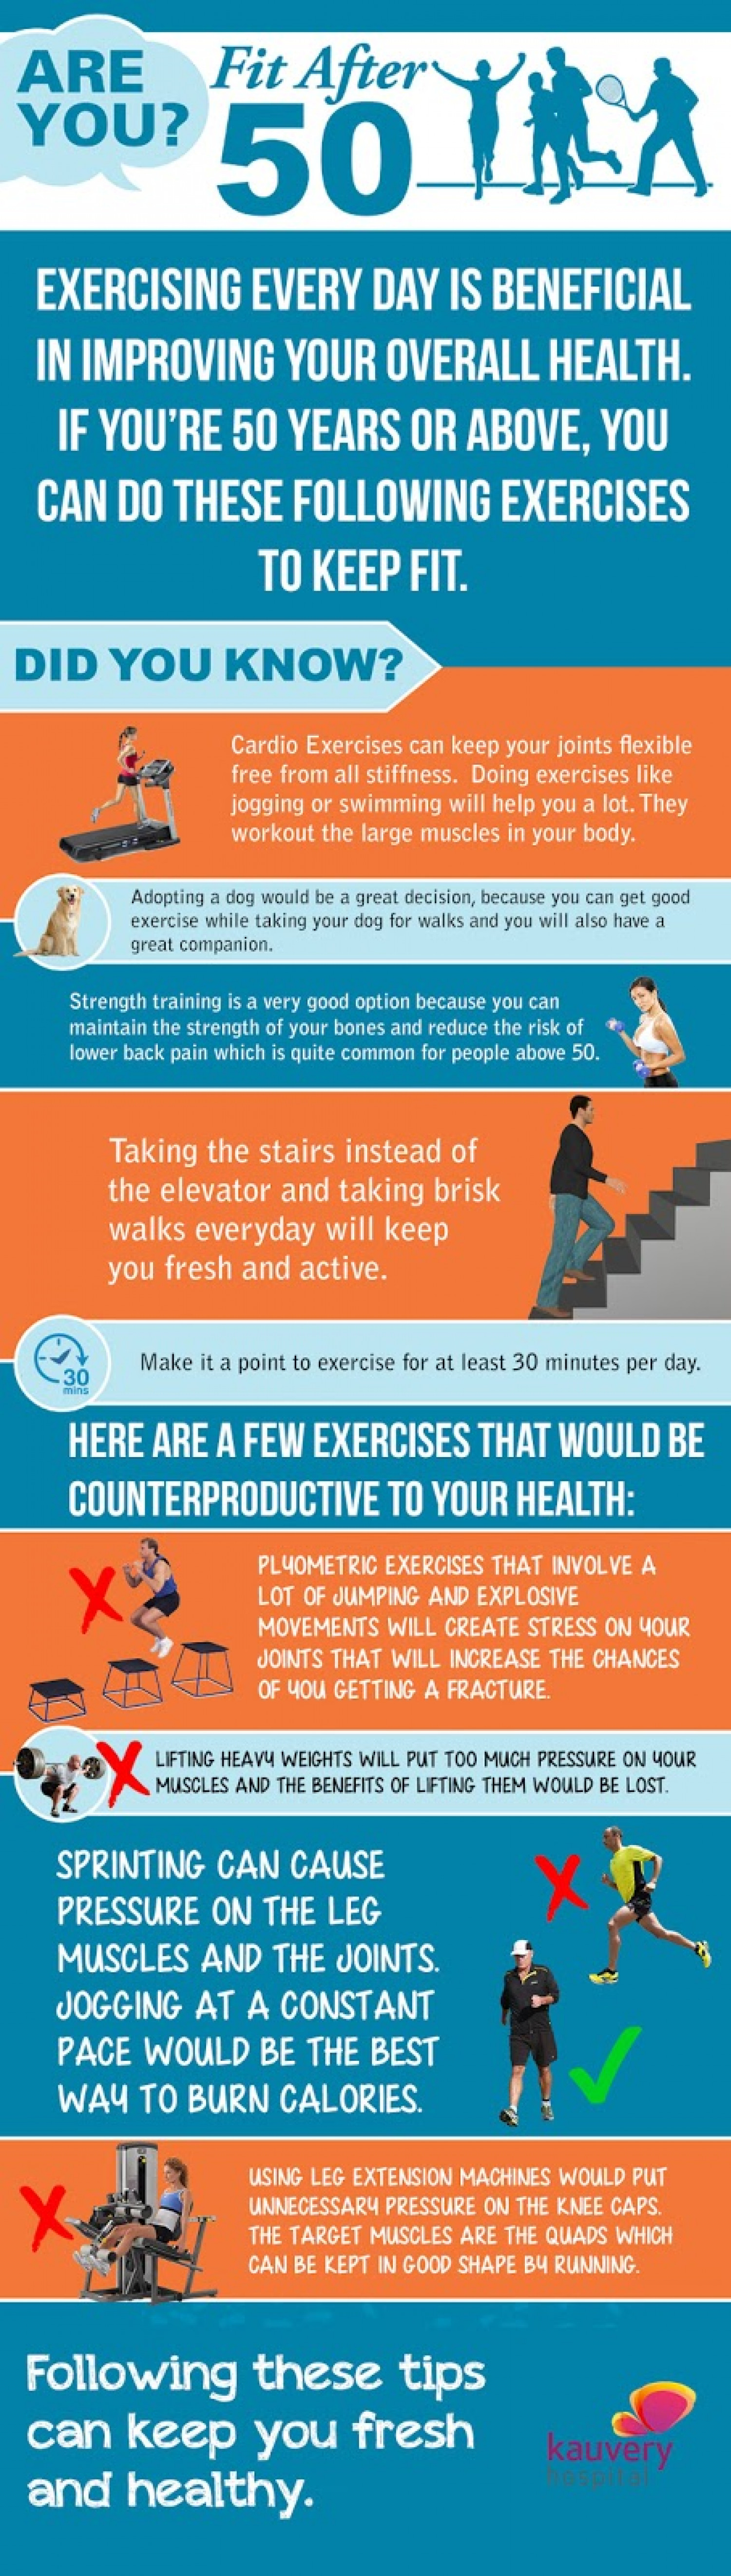 How to keep fit after 50  Infographic